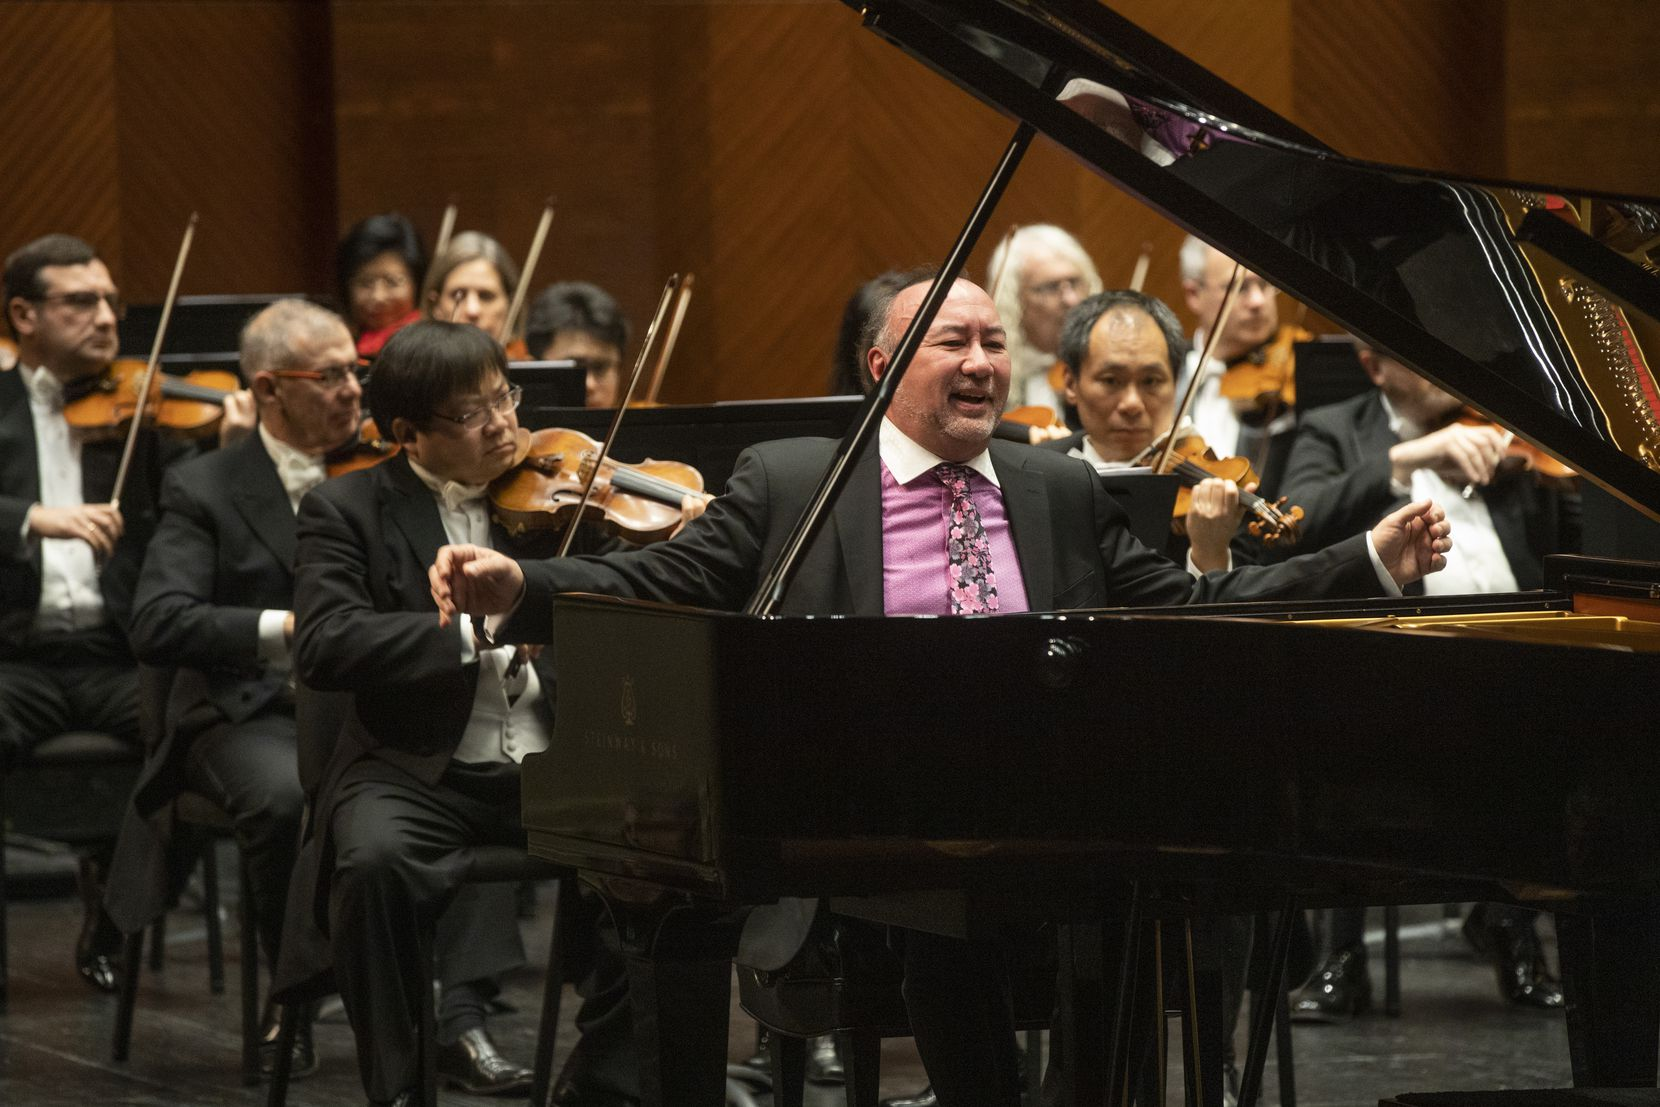 Pianist John Kimura Parker performs with the Fort Worth Symphony Orchestra in concert at Bass Performance Hall in Fort Worth, Texas, on Friday, Jan. 10, 2020.